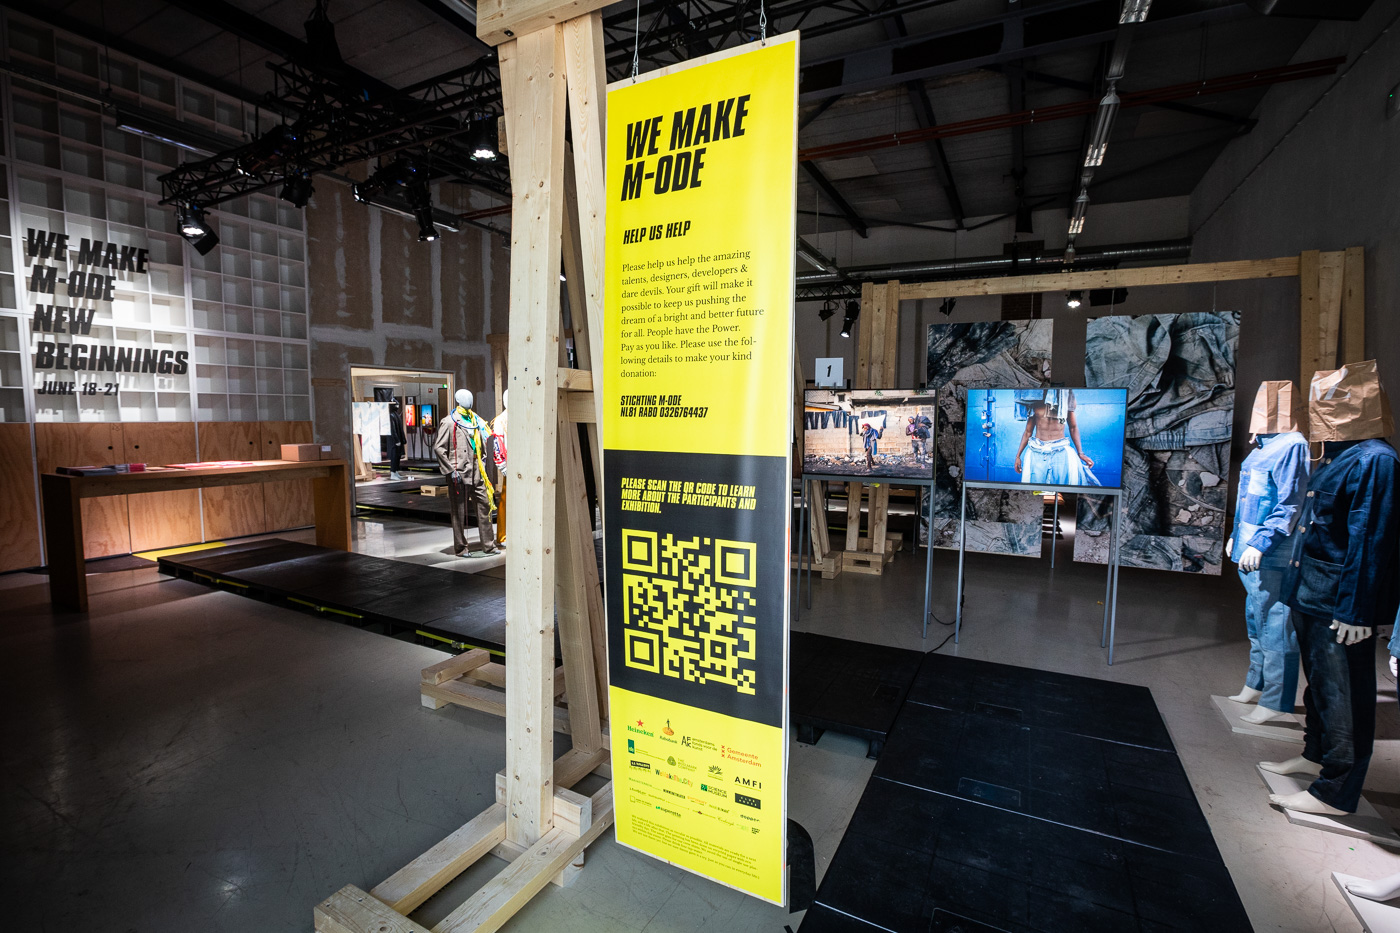 ©Team Peter Stigter, WE MAKE M-ODE Expo 2019